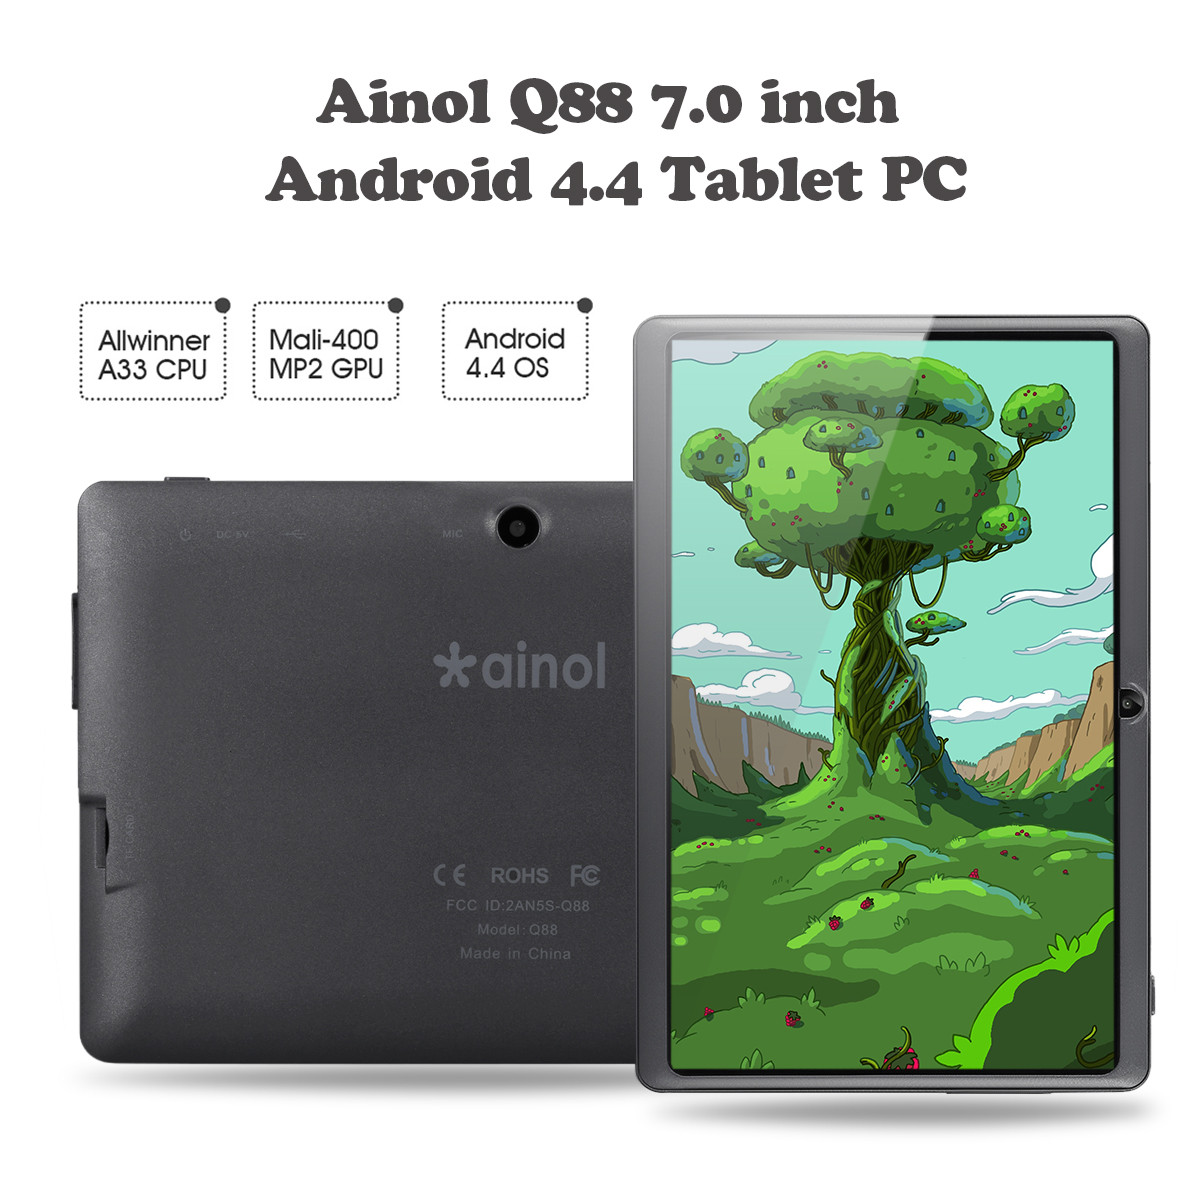 "Ainol Q88 7""1024*600 Android 4 4 Allwinner A33 512MB+8GB Dual Camera WIFI  External 3G Tablet PC -- RED"